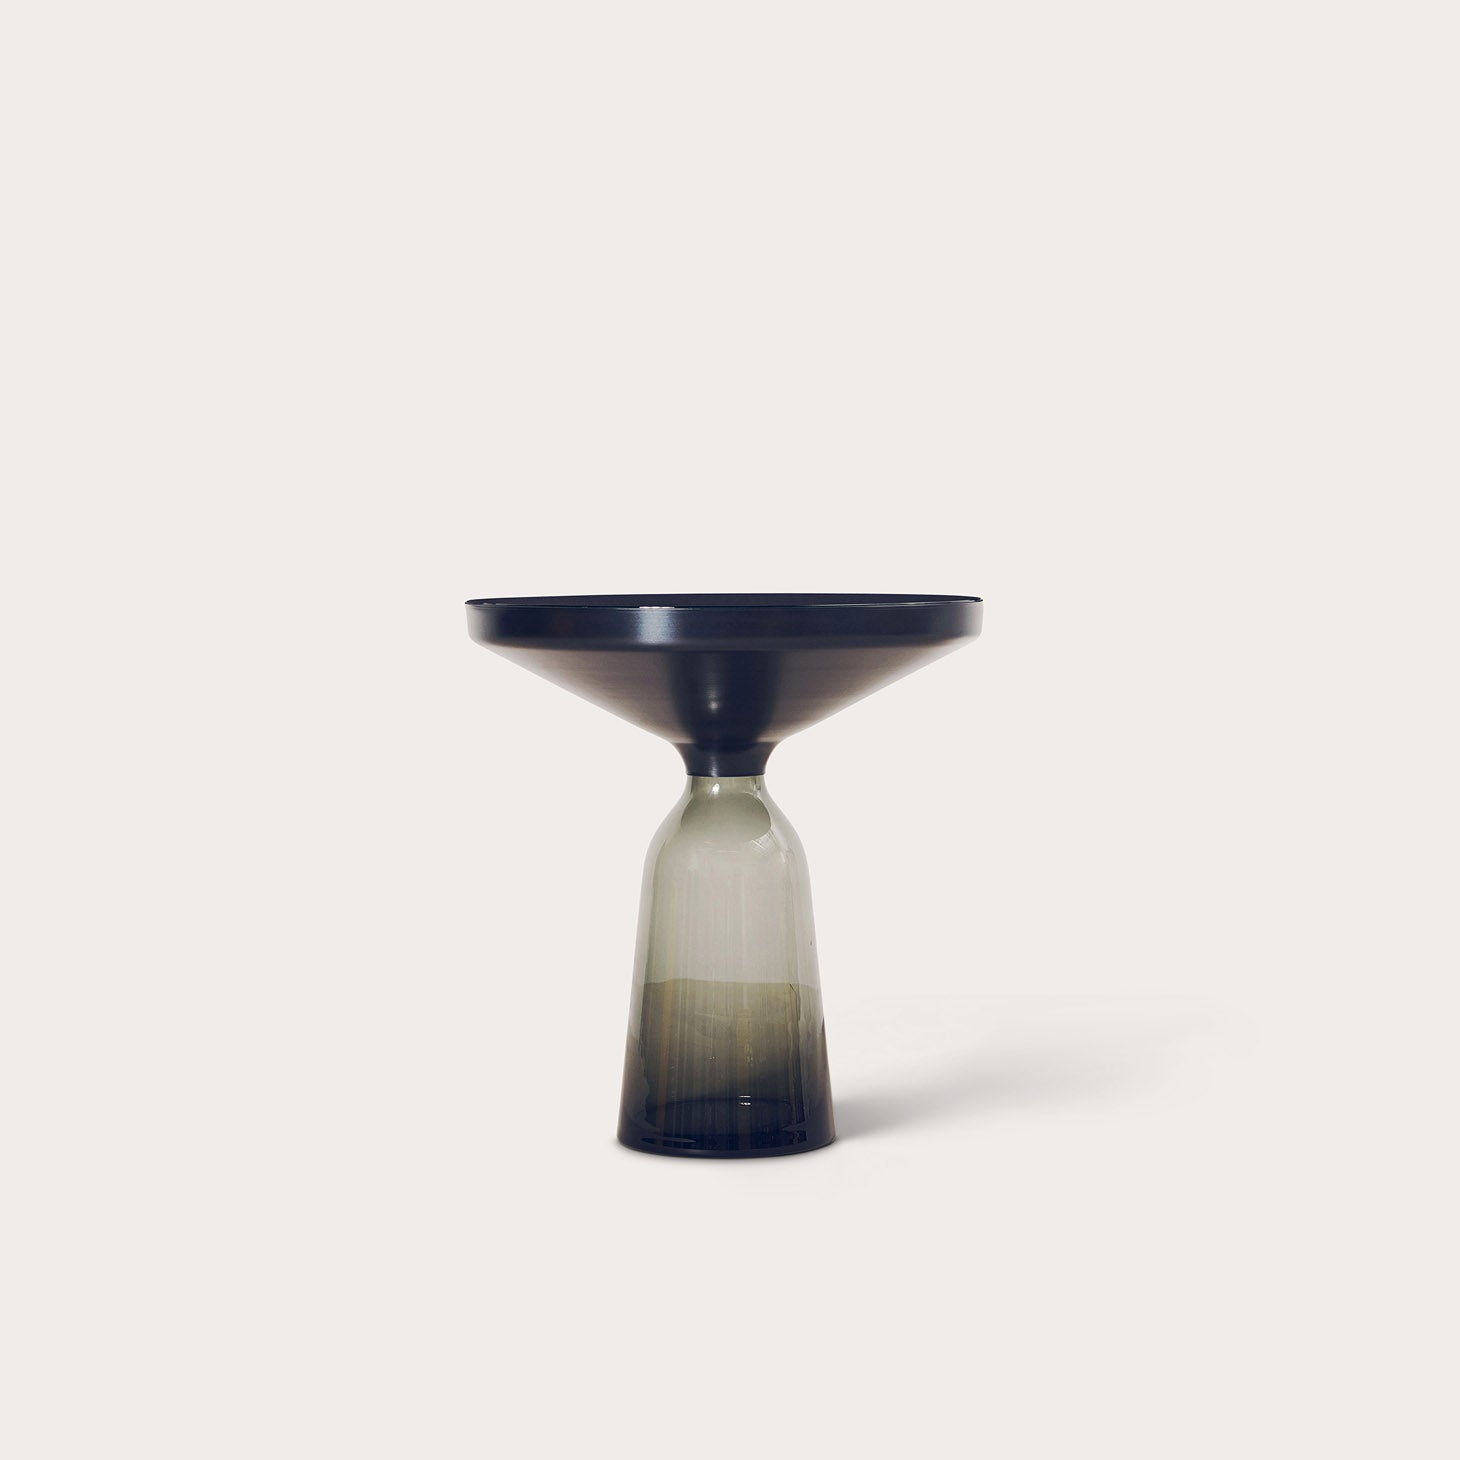 Bell Table Tables Sebastian Herkner Designer Furniture Sku: 001-230-10179